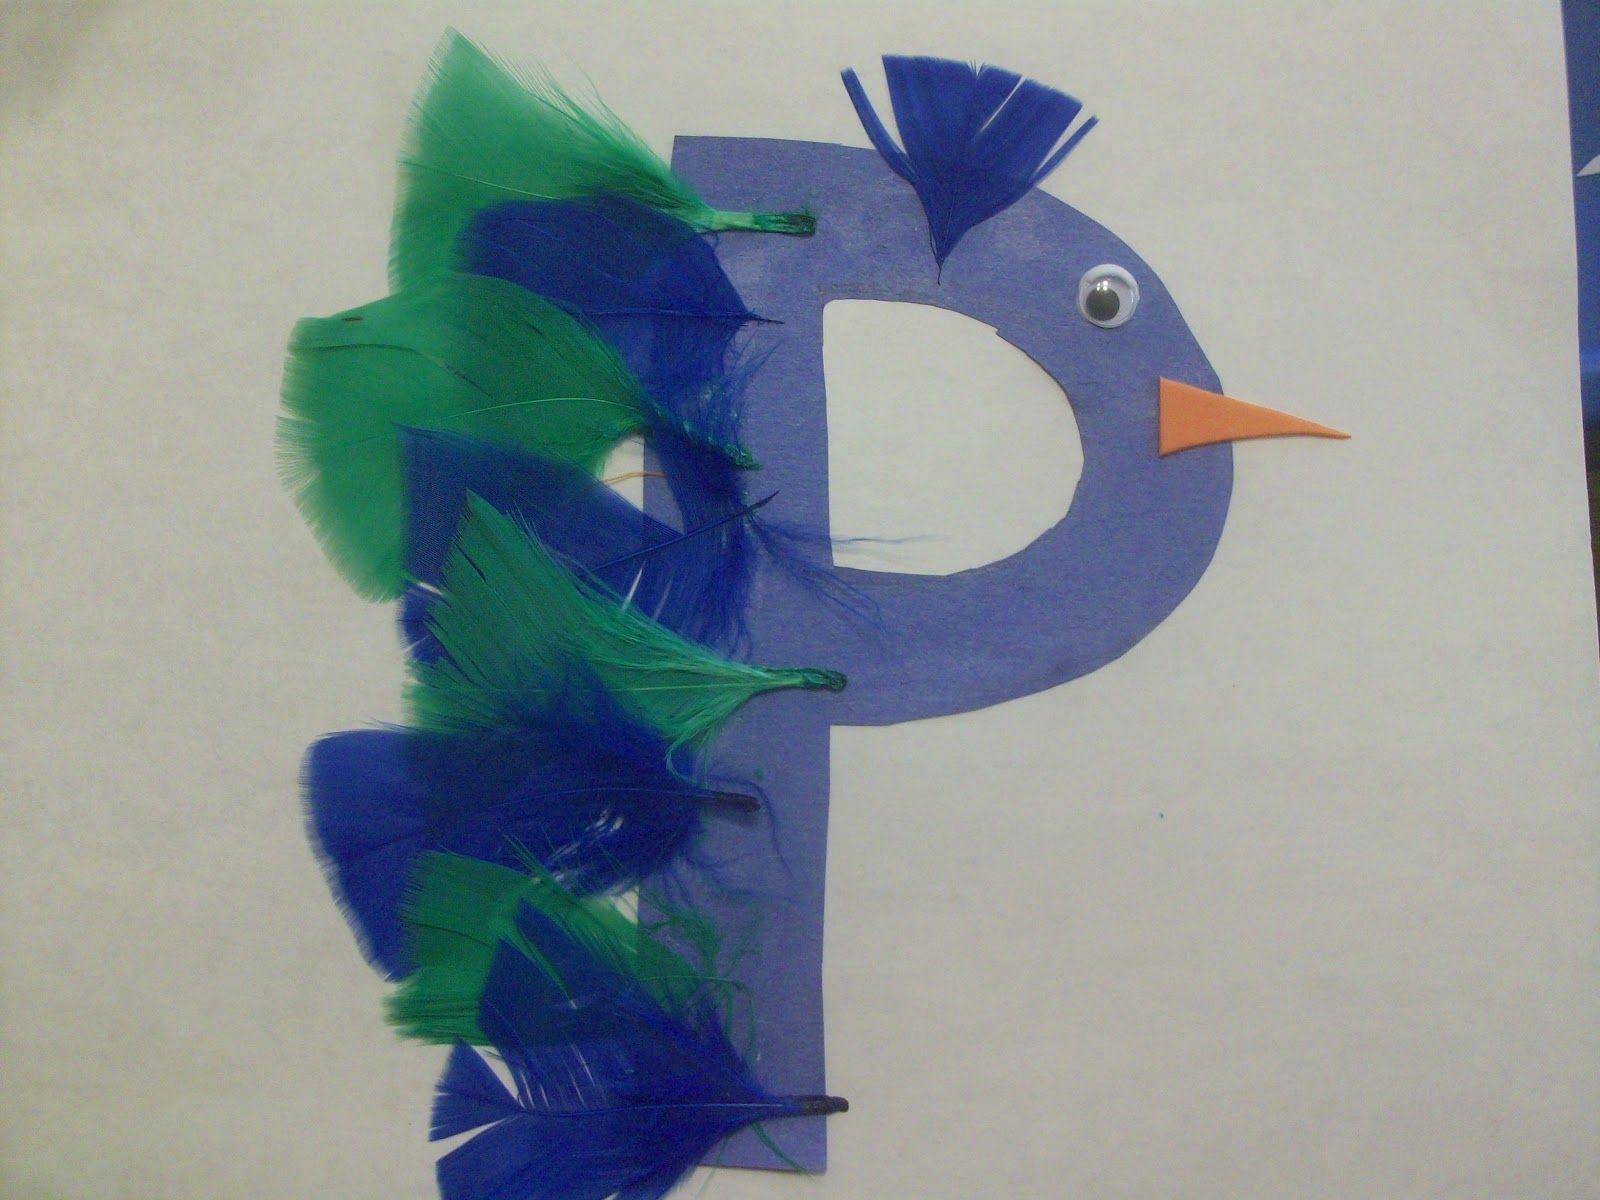 Peacock Craft Ideas For Kids Part - 41: This Page Is A Lot Of Letter P Crafts For Kids. There Are Letter P Craft  Ideas And Projects For Kids. If You Want Teach The Alphabet Easy And Fun To  Kids ...